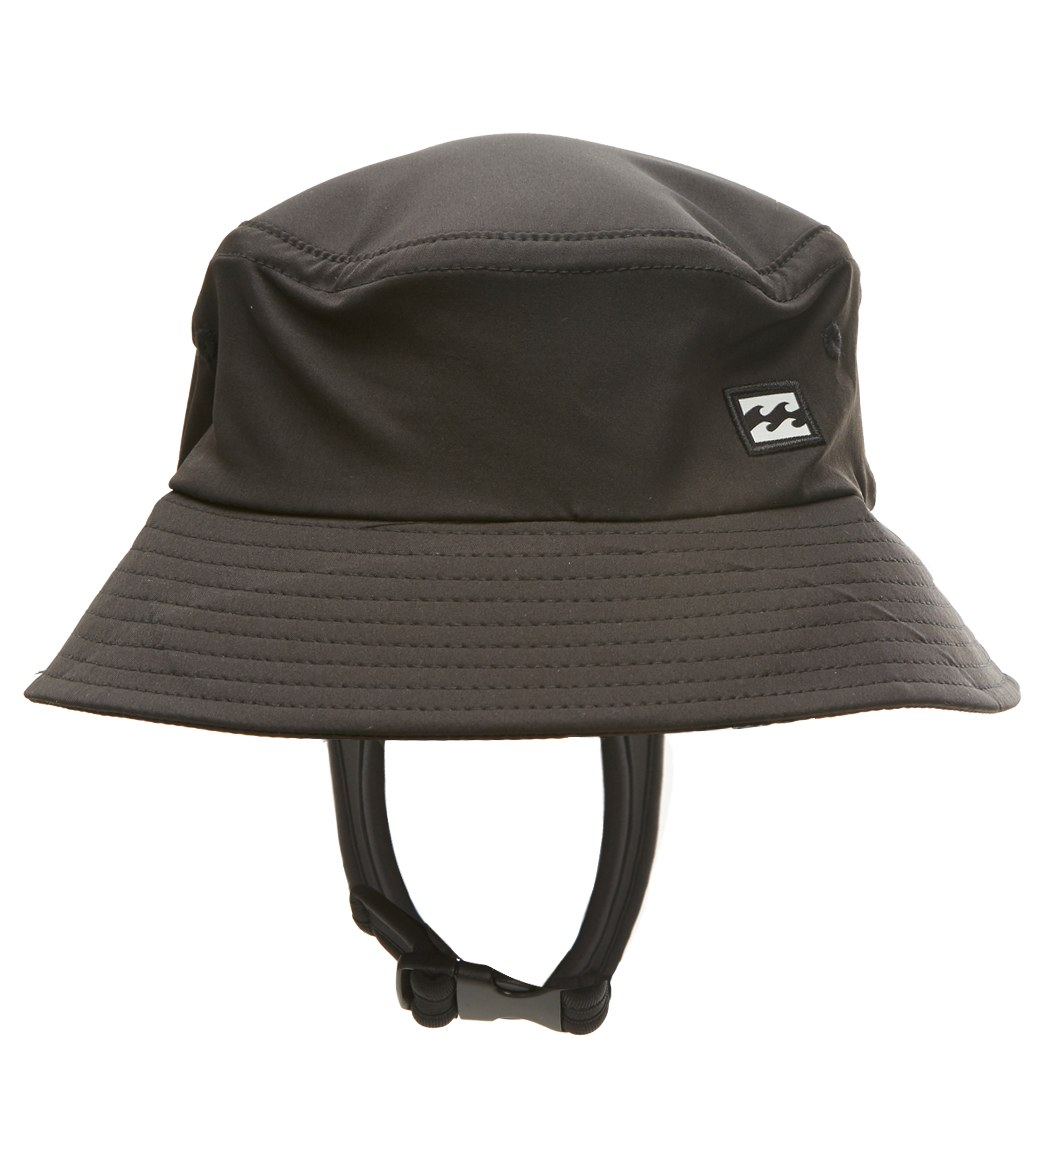 Billabong Men s Surf Bucket Hat at SwimOutlet.com 722c1ed1864